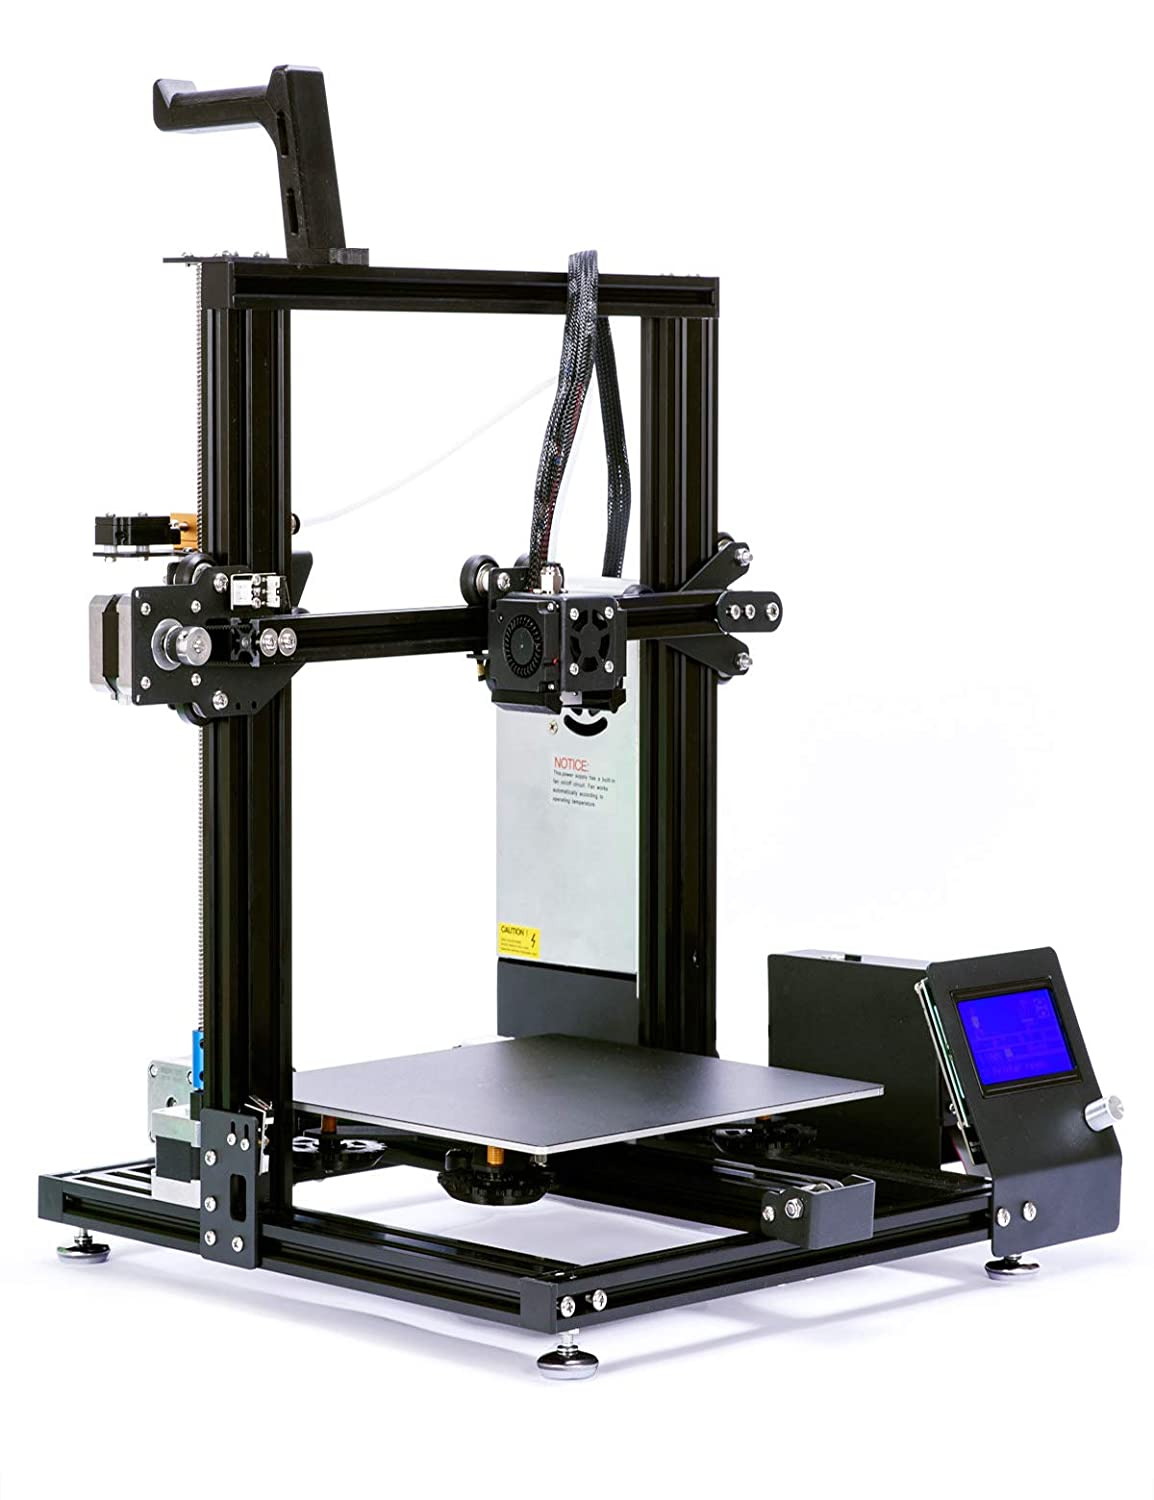 ADIMLab Gantry-S 3D Printer 32bit Main Board 230X230X260 Build Size with  Resume Printing Function Filament Detector 24V15A Power Metal Extruder